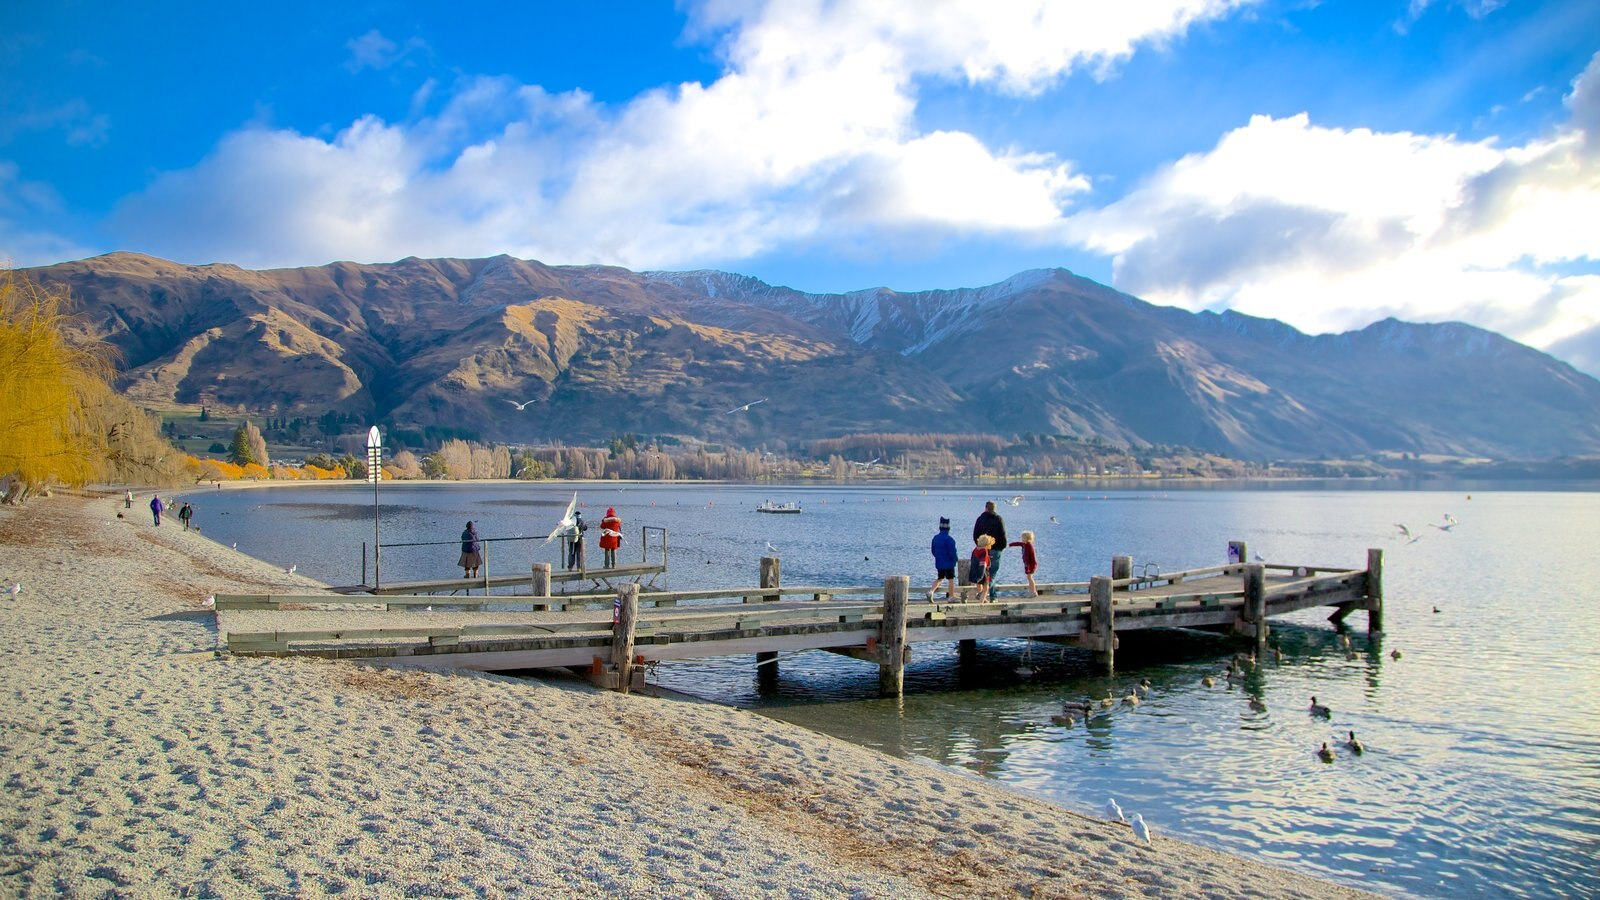 Lake Wanaka which includes a lake or waterhole, a beach and landscape views